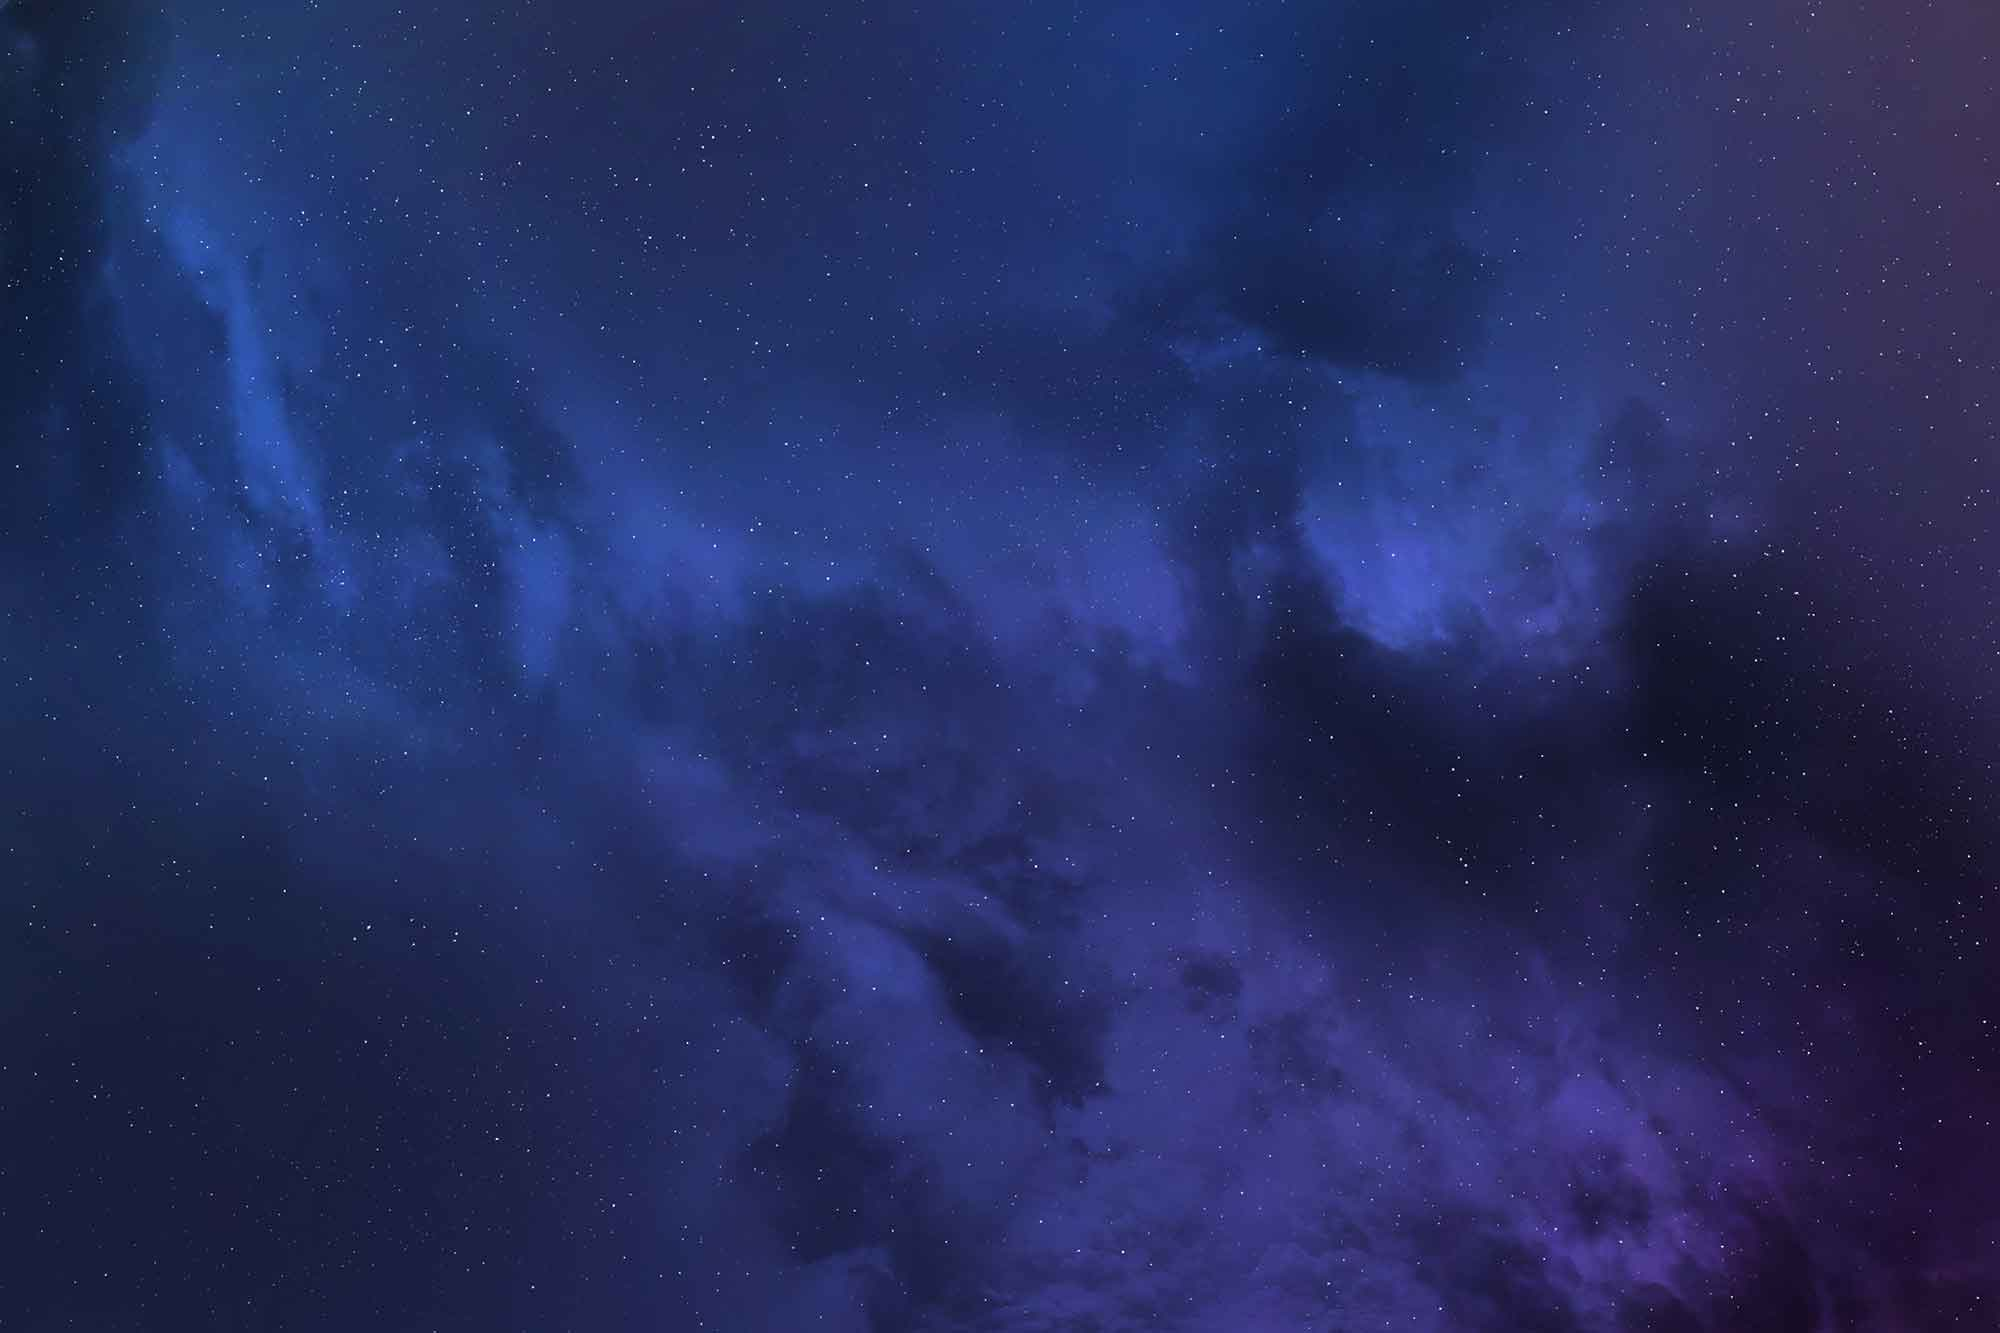 Space Background Image 8